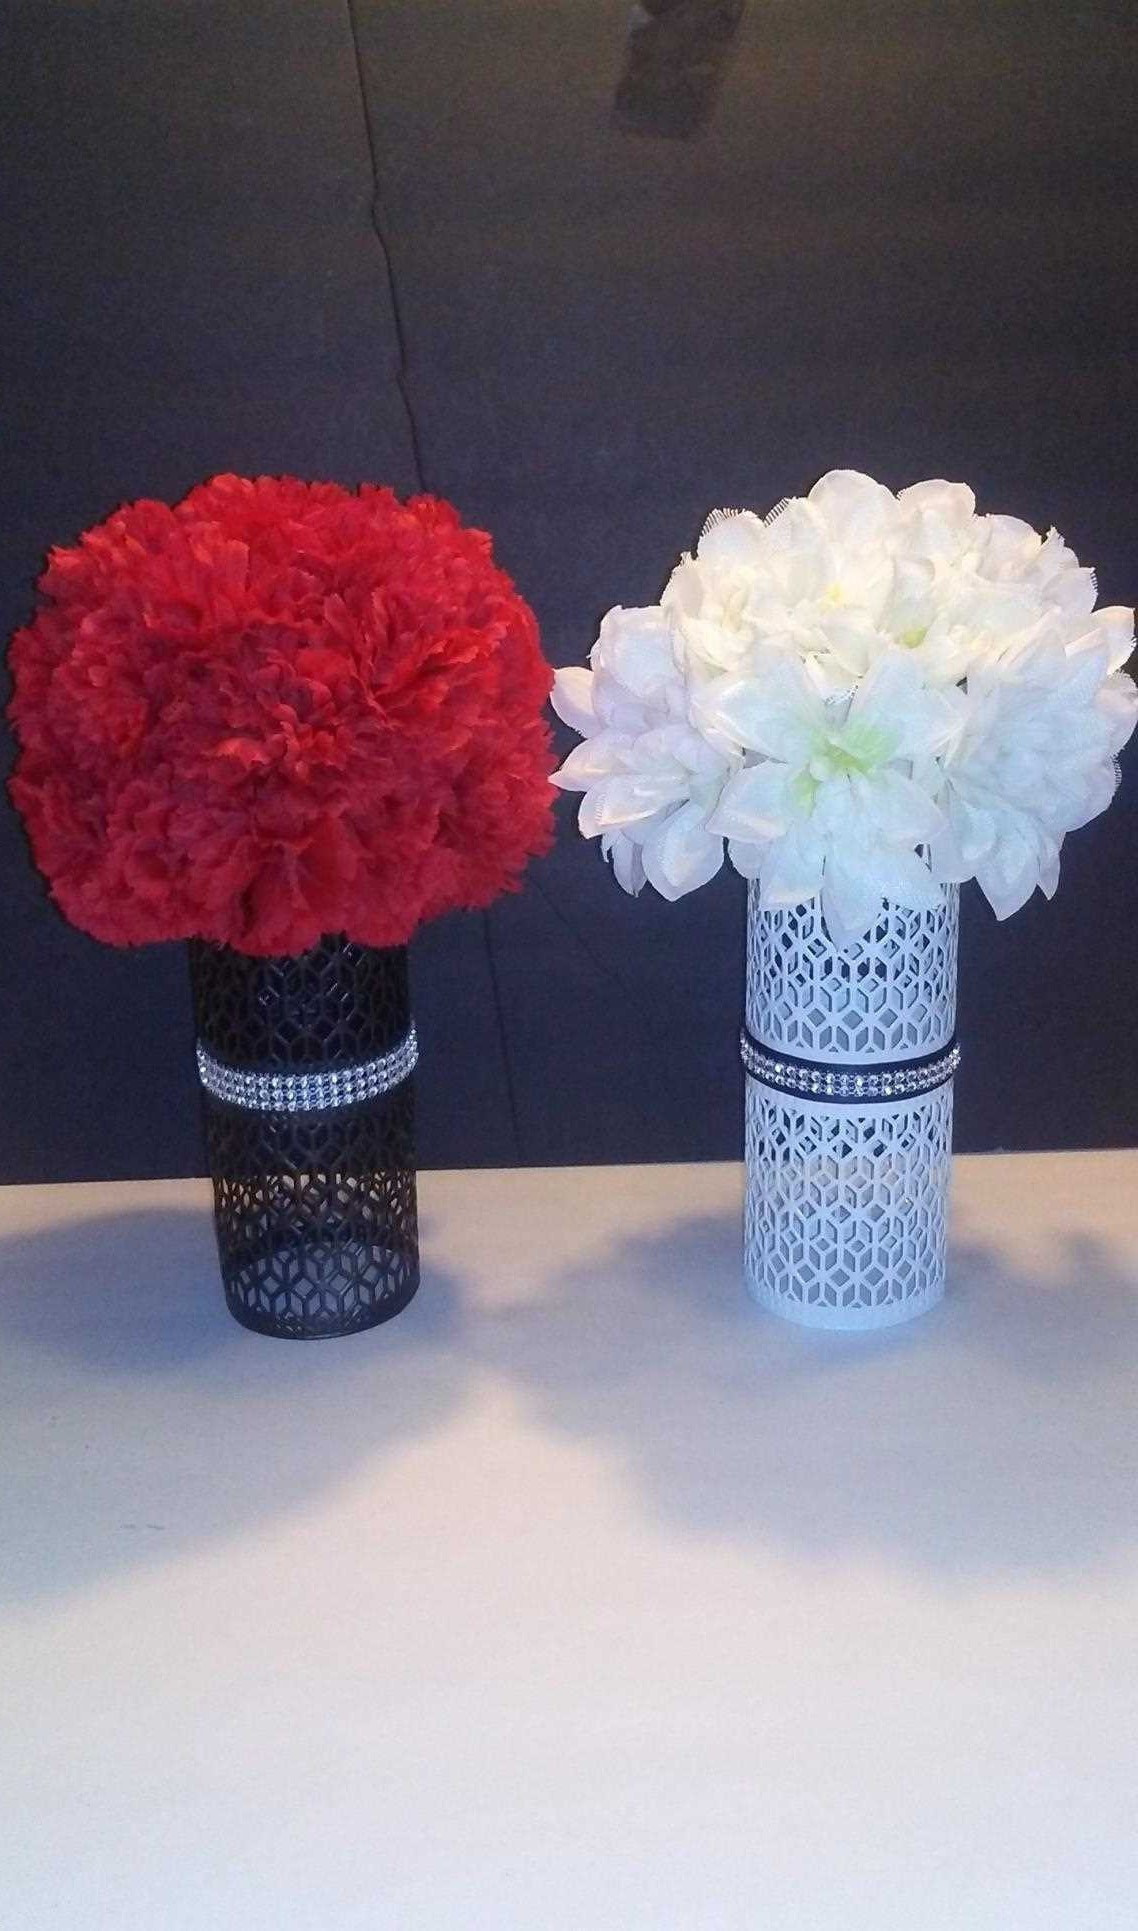 dining table vase decor of wedding flower decorations new floral decor for home beautiful decor throughout wedding flower decorations best of decorations for weddings beautiful dollar tree wedding decorations of wedding flower